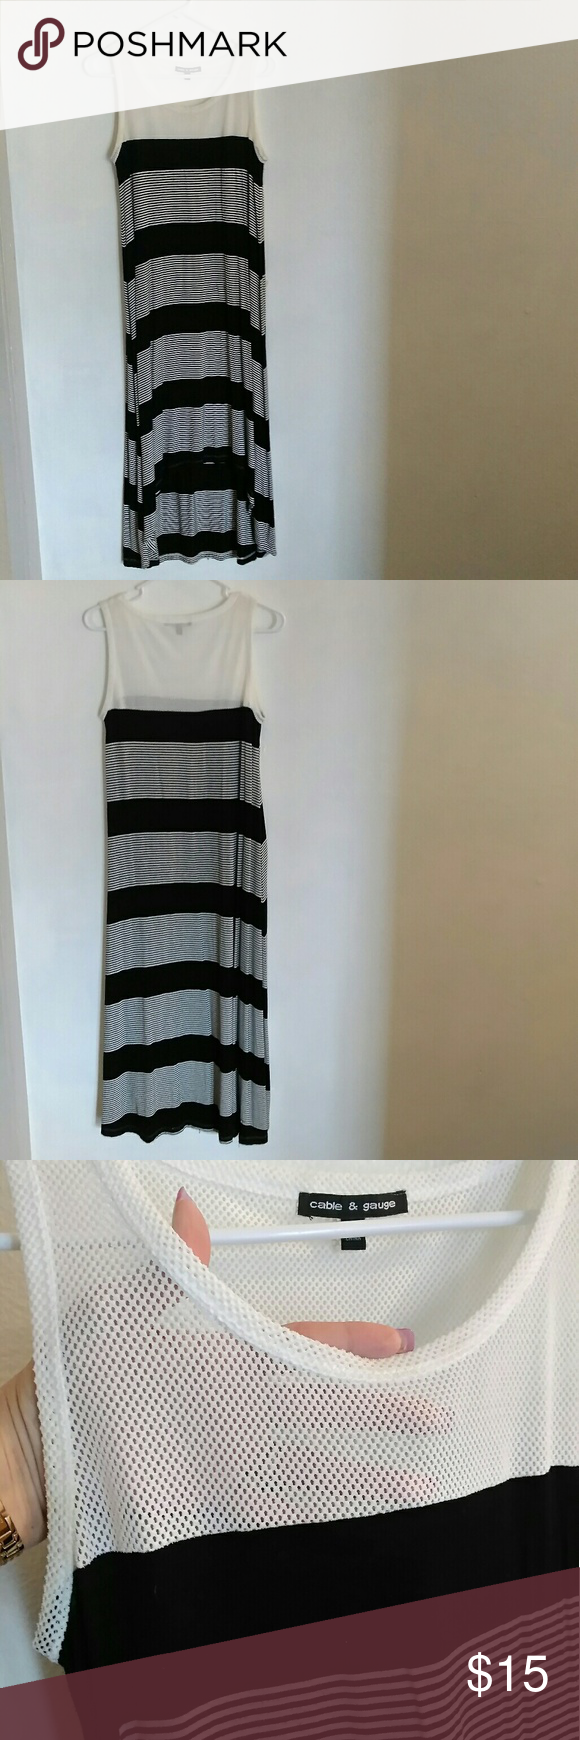 Cable and gauge maxi dress